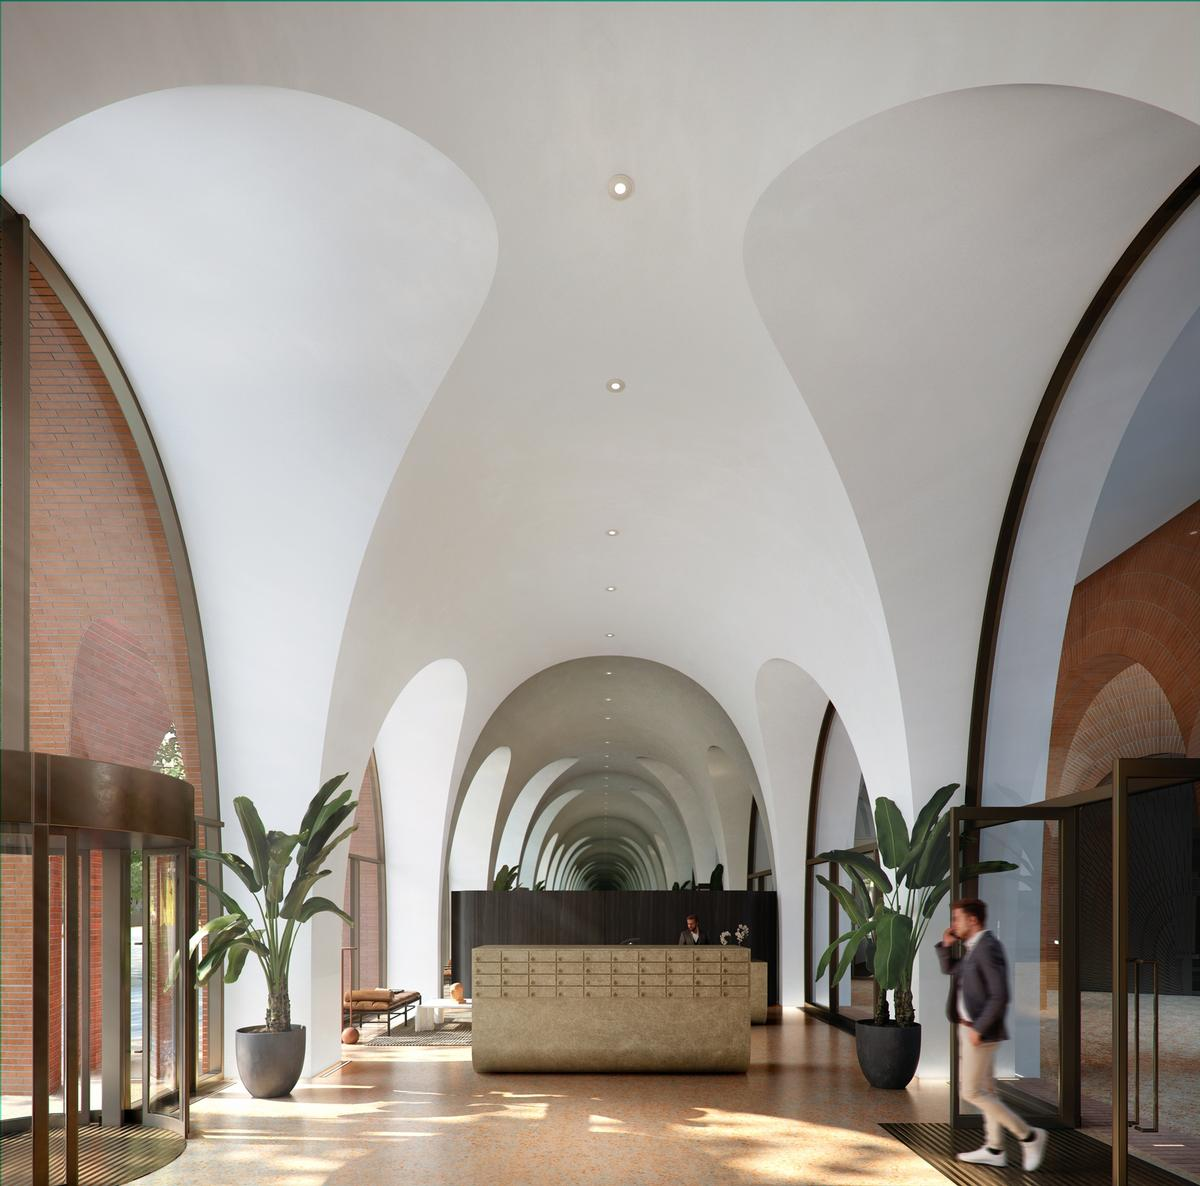 Interiors will feature floor-to-ceiling windows, vaulted ceilings and balconies / Alison Brooks Architects